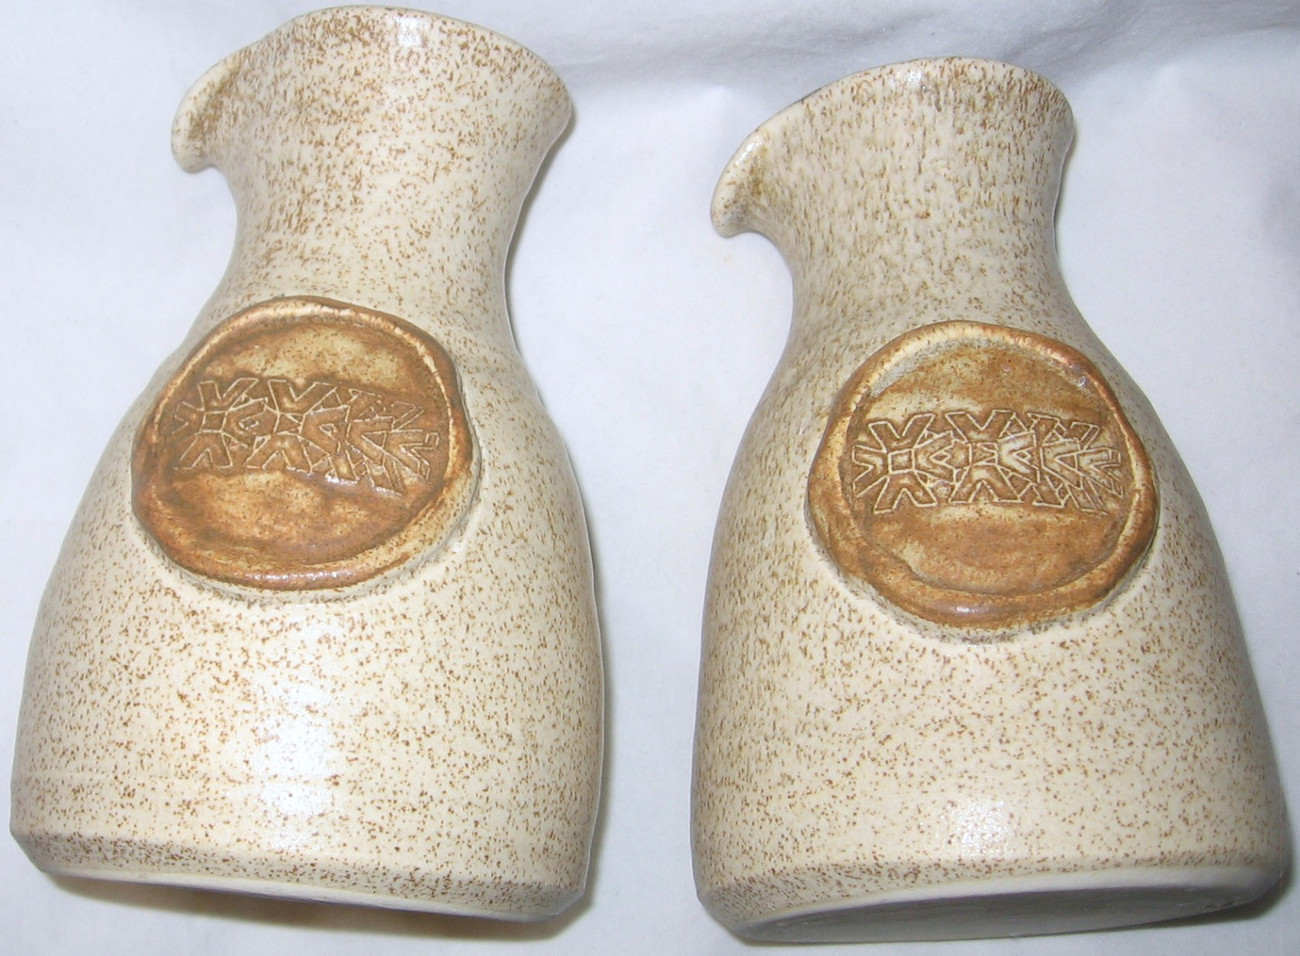 "LOT OF 2 CLEE ETON WINDSOR POTTERY JUGS 6 1/4""  FREE SHIPPING USA."